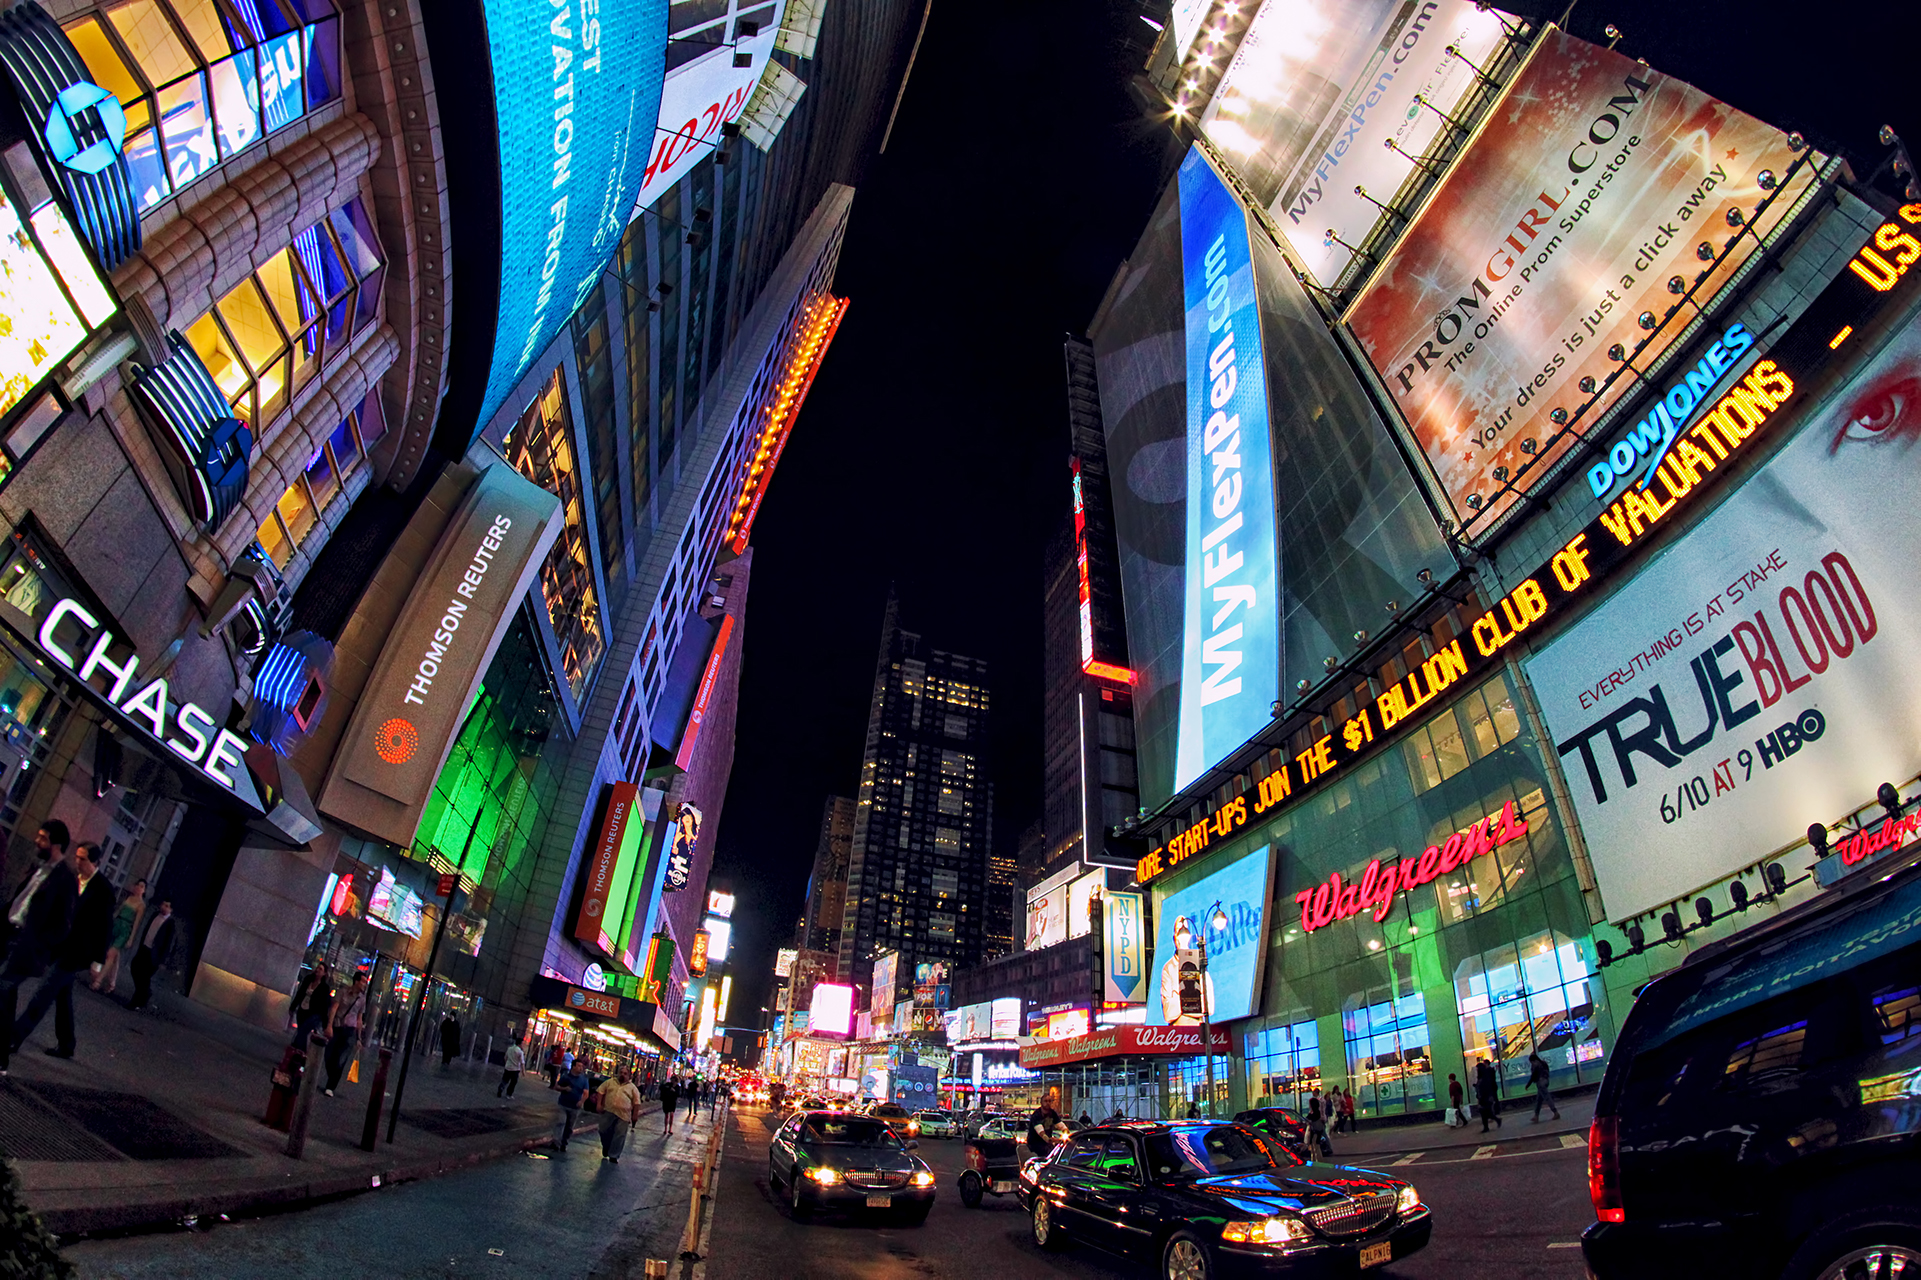 metropolitan-area-metropolis-urban-area-landmark-city-cityscape-night-street-downtown-skyscraper-advertising-daytime-building-pedestrian-neon-900720.jpg